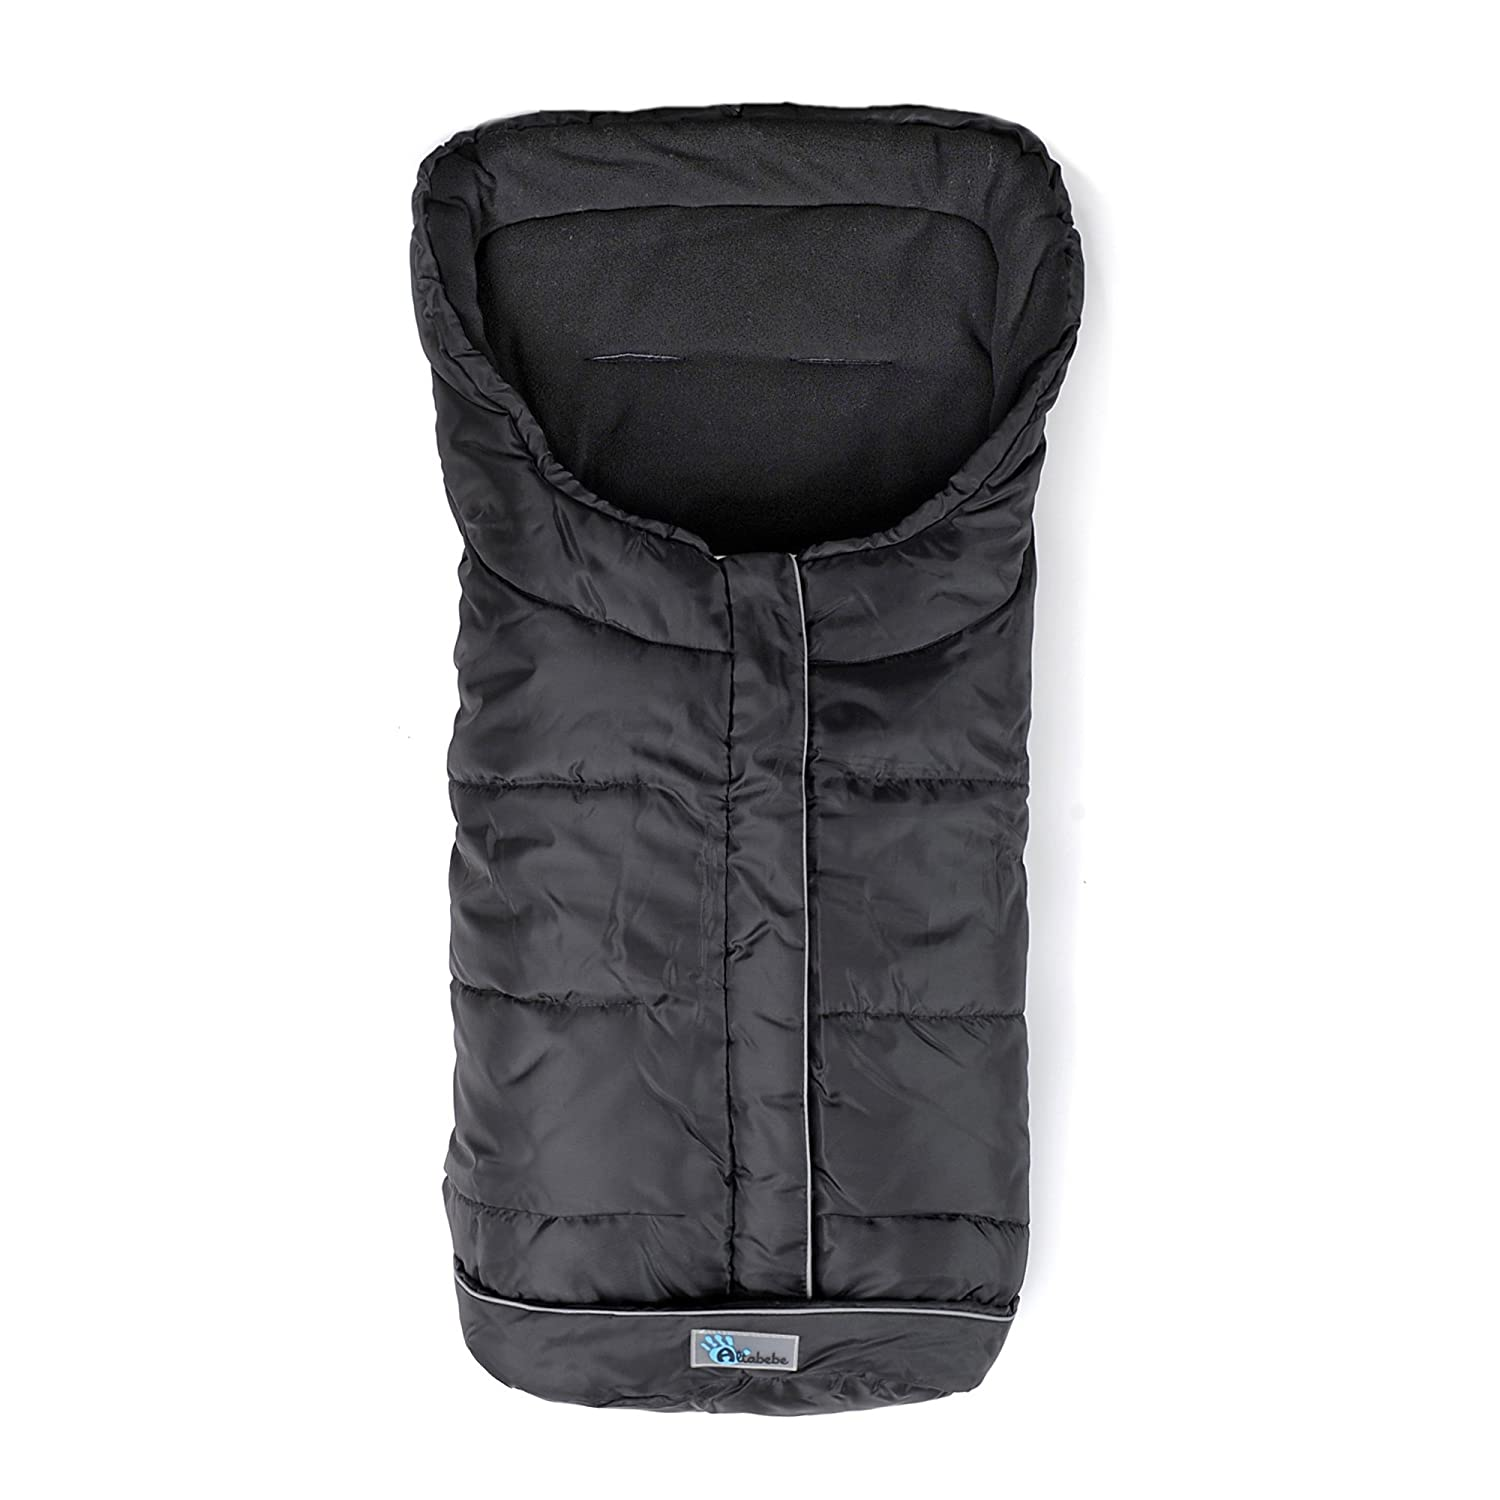 Altabebe Active Long Winter Footmuff for Stroller (12-36 Months, Black) AL2203XL-03